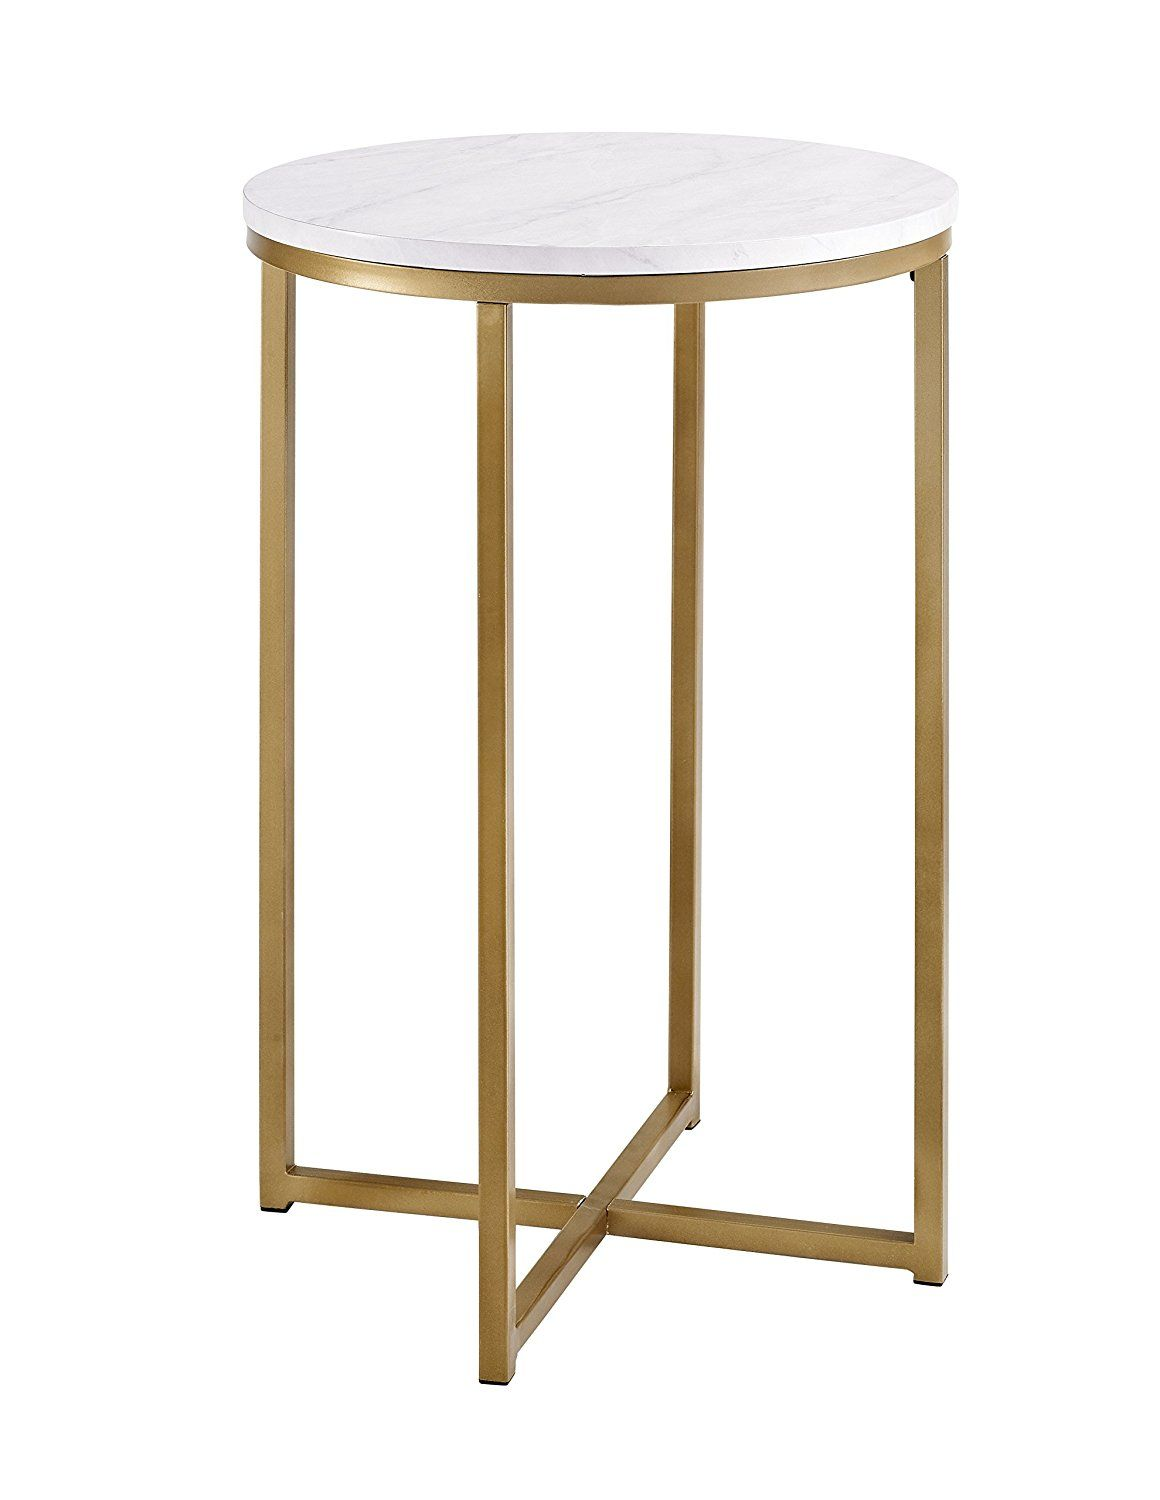 furniture round side table marble gold kitchen faux accent dining contemporary cream colored nightstand small plastic garden gloss coffee oval outdoor kidney grey room chairs with